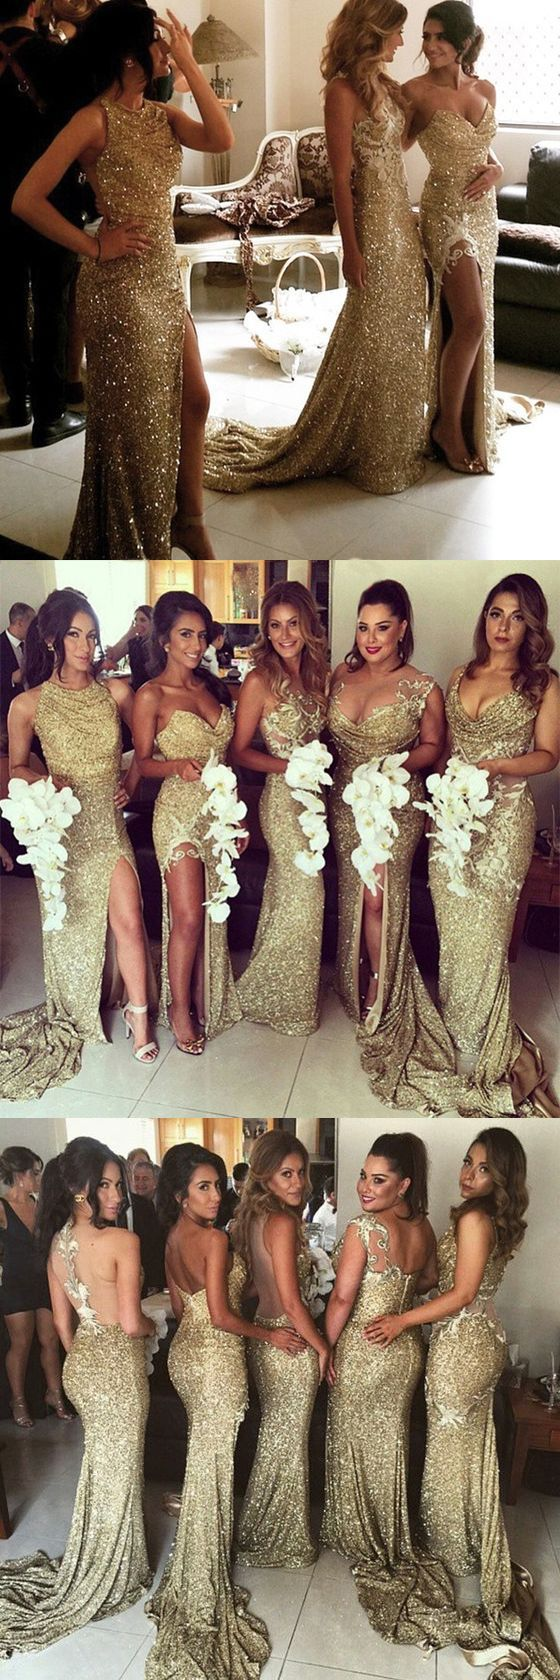 Sequin bridesmaid dresses, long mismatched bridesmaid dresses, sexy gorgeous bridesmaid dresses, sparkly wedding party dresses,15469